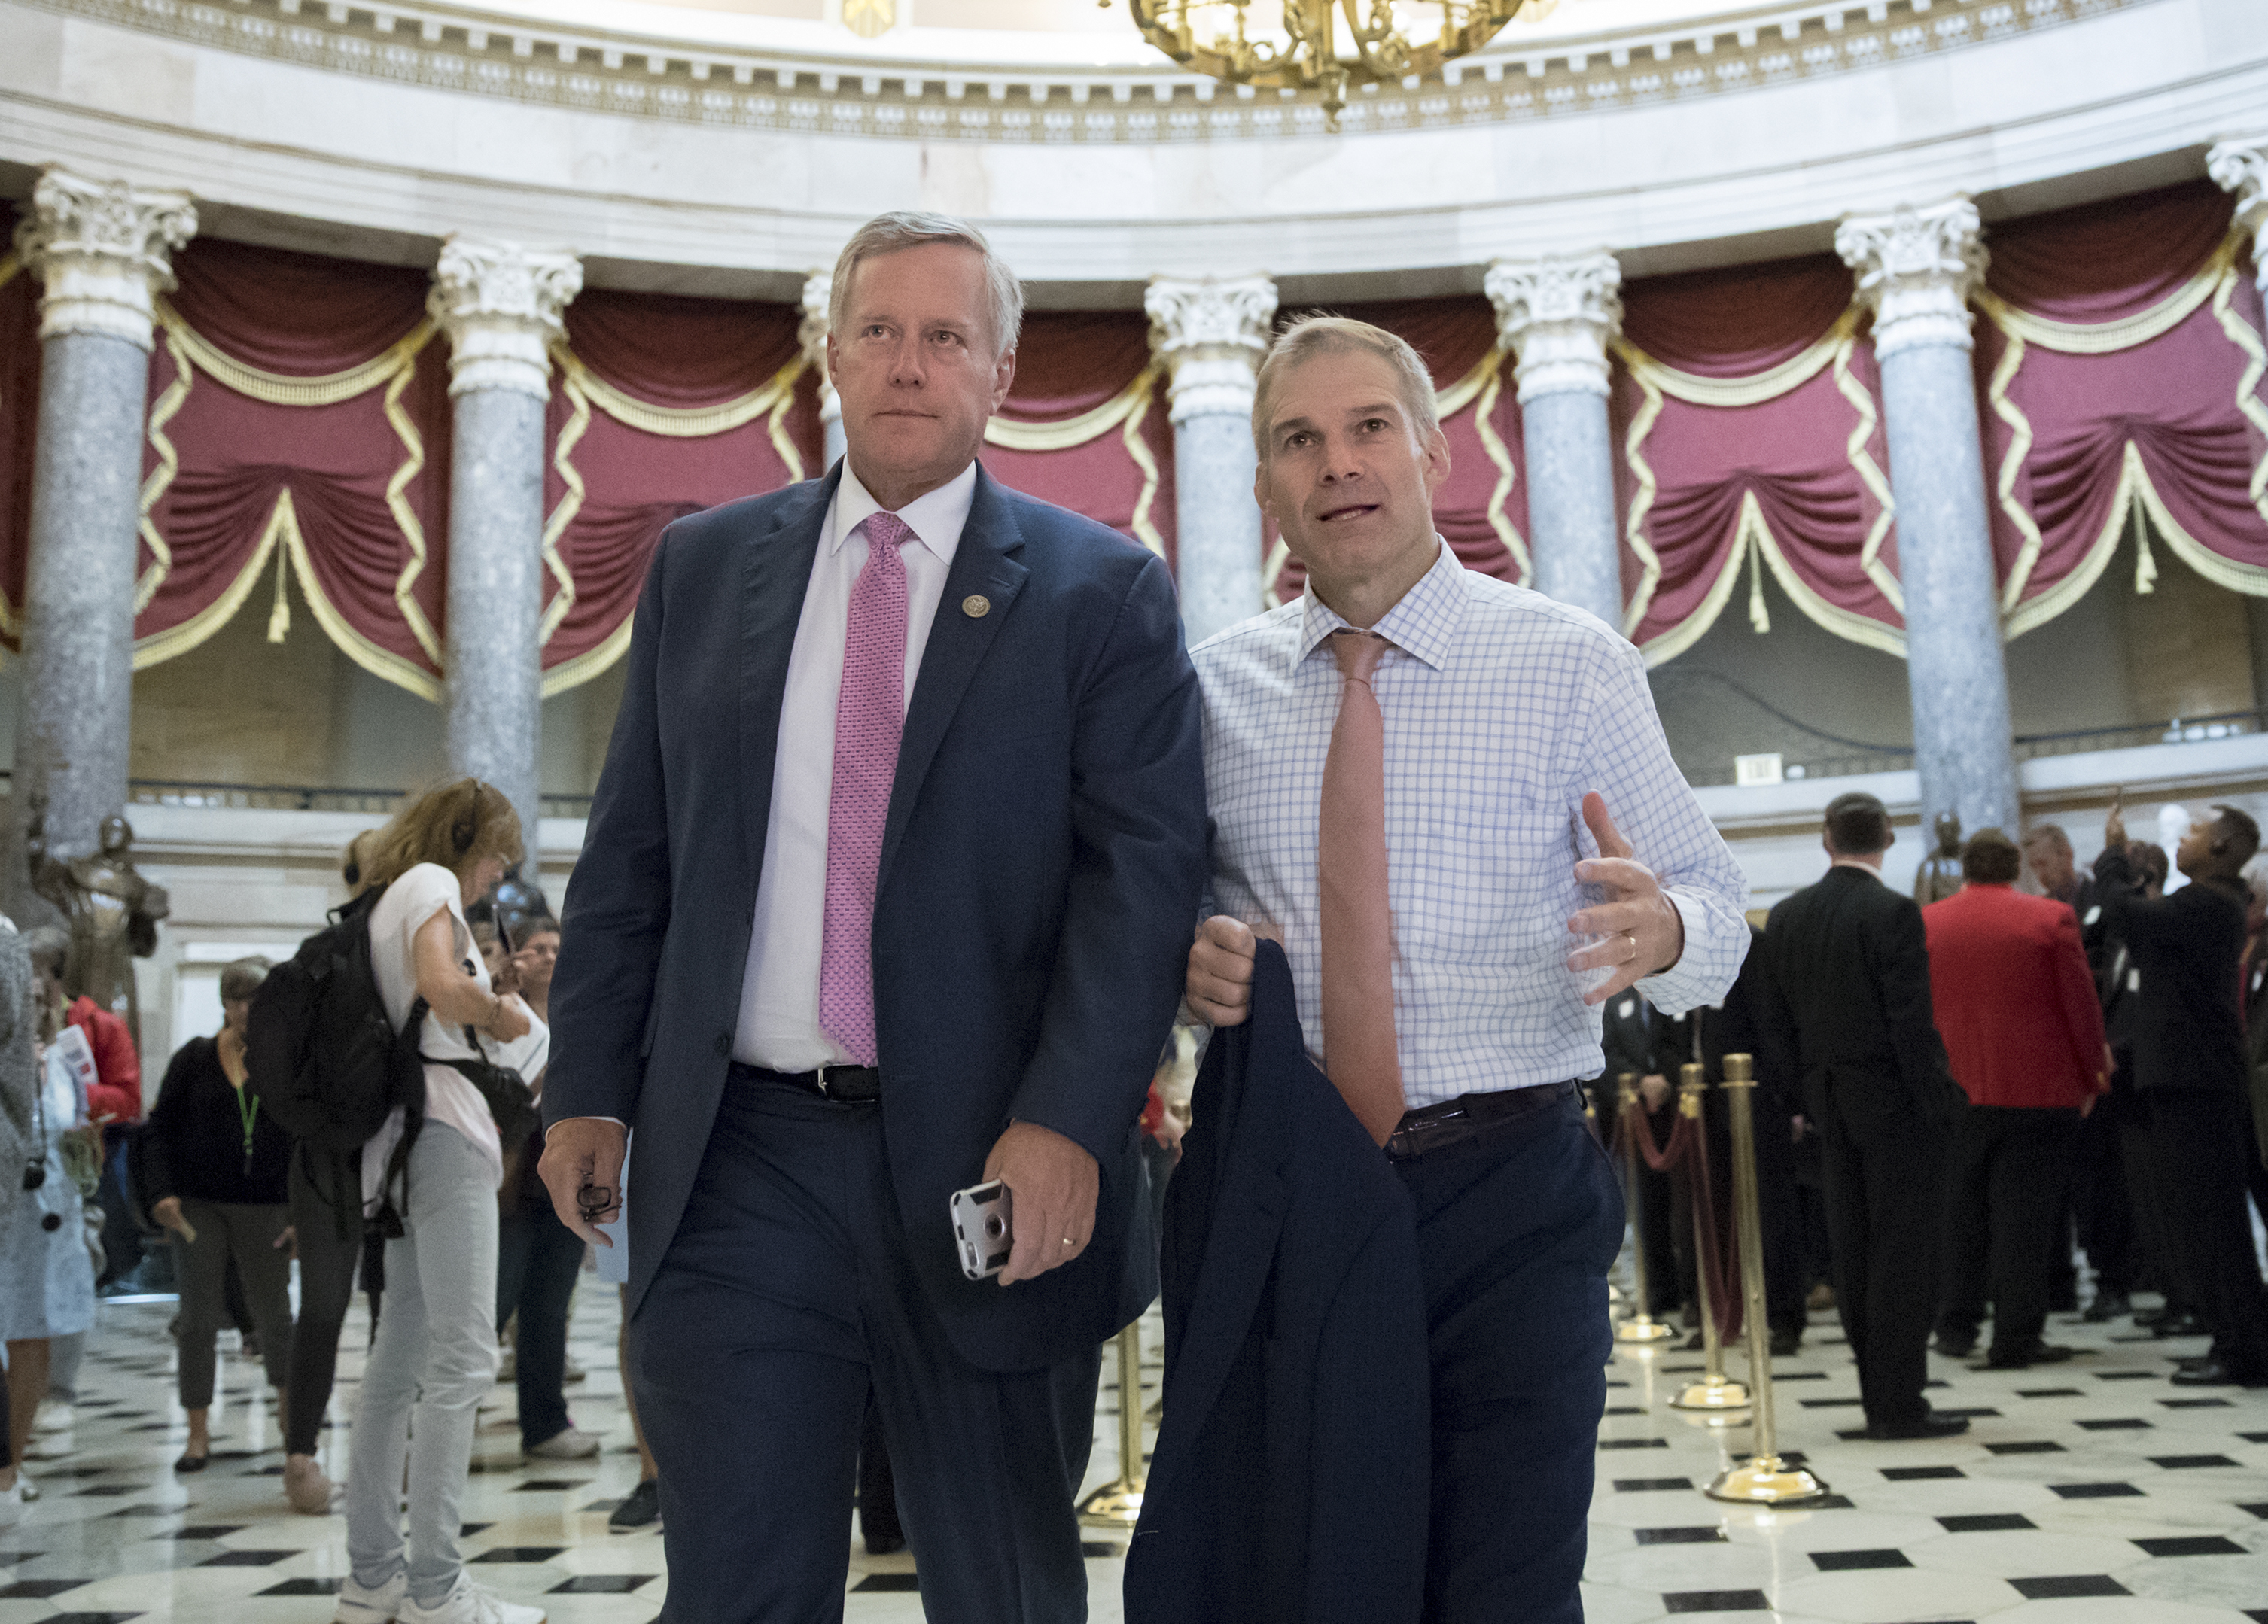 Rep. Mark Meadows, R-N.C., chairman of the conservative House Freedom Caucus, and Rep. Jim Jordan, R-Ohio, a key member of the group, walk through Statuary Hall at the Capitol in Washington, Wednesday, Sept. 13, 2017. With President Donald Trump wanting a legislative solution to replace the Deferred Action for Childhood Arrivals program, Meadows has said he will put together a working group to craft a conservative immigration plan. (AP Photo/J. Scott Applewhite)